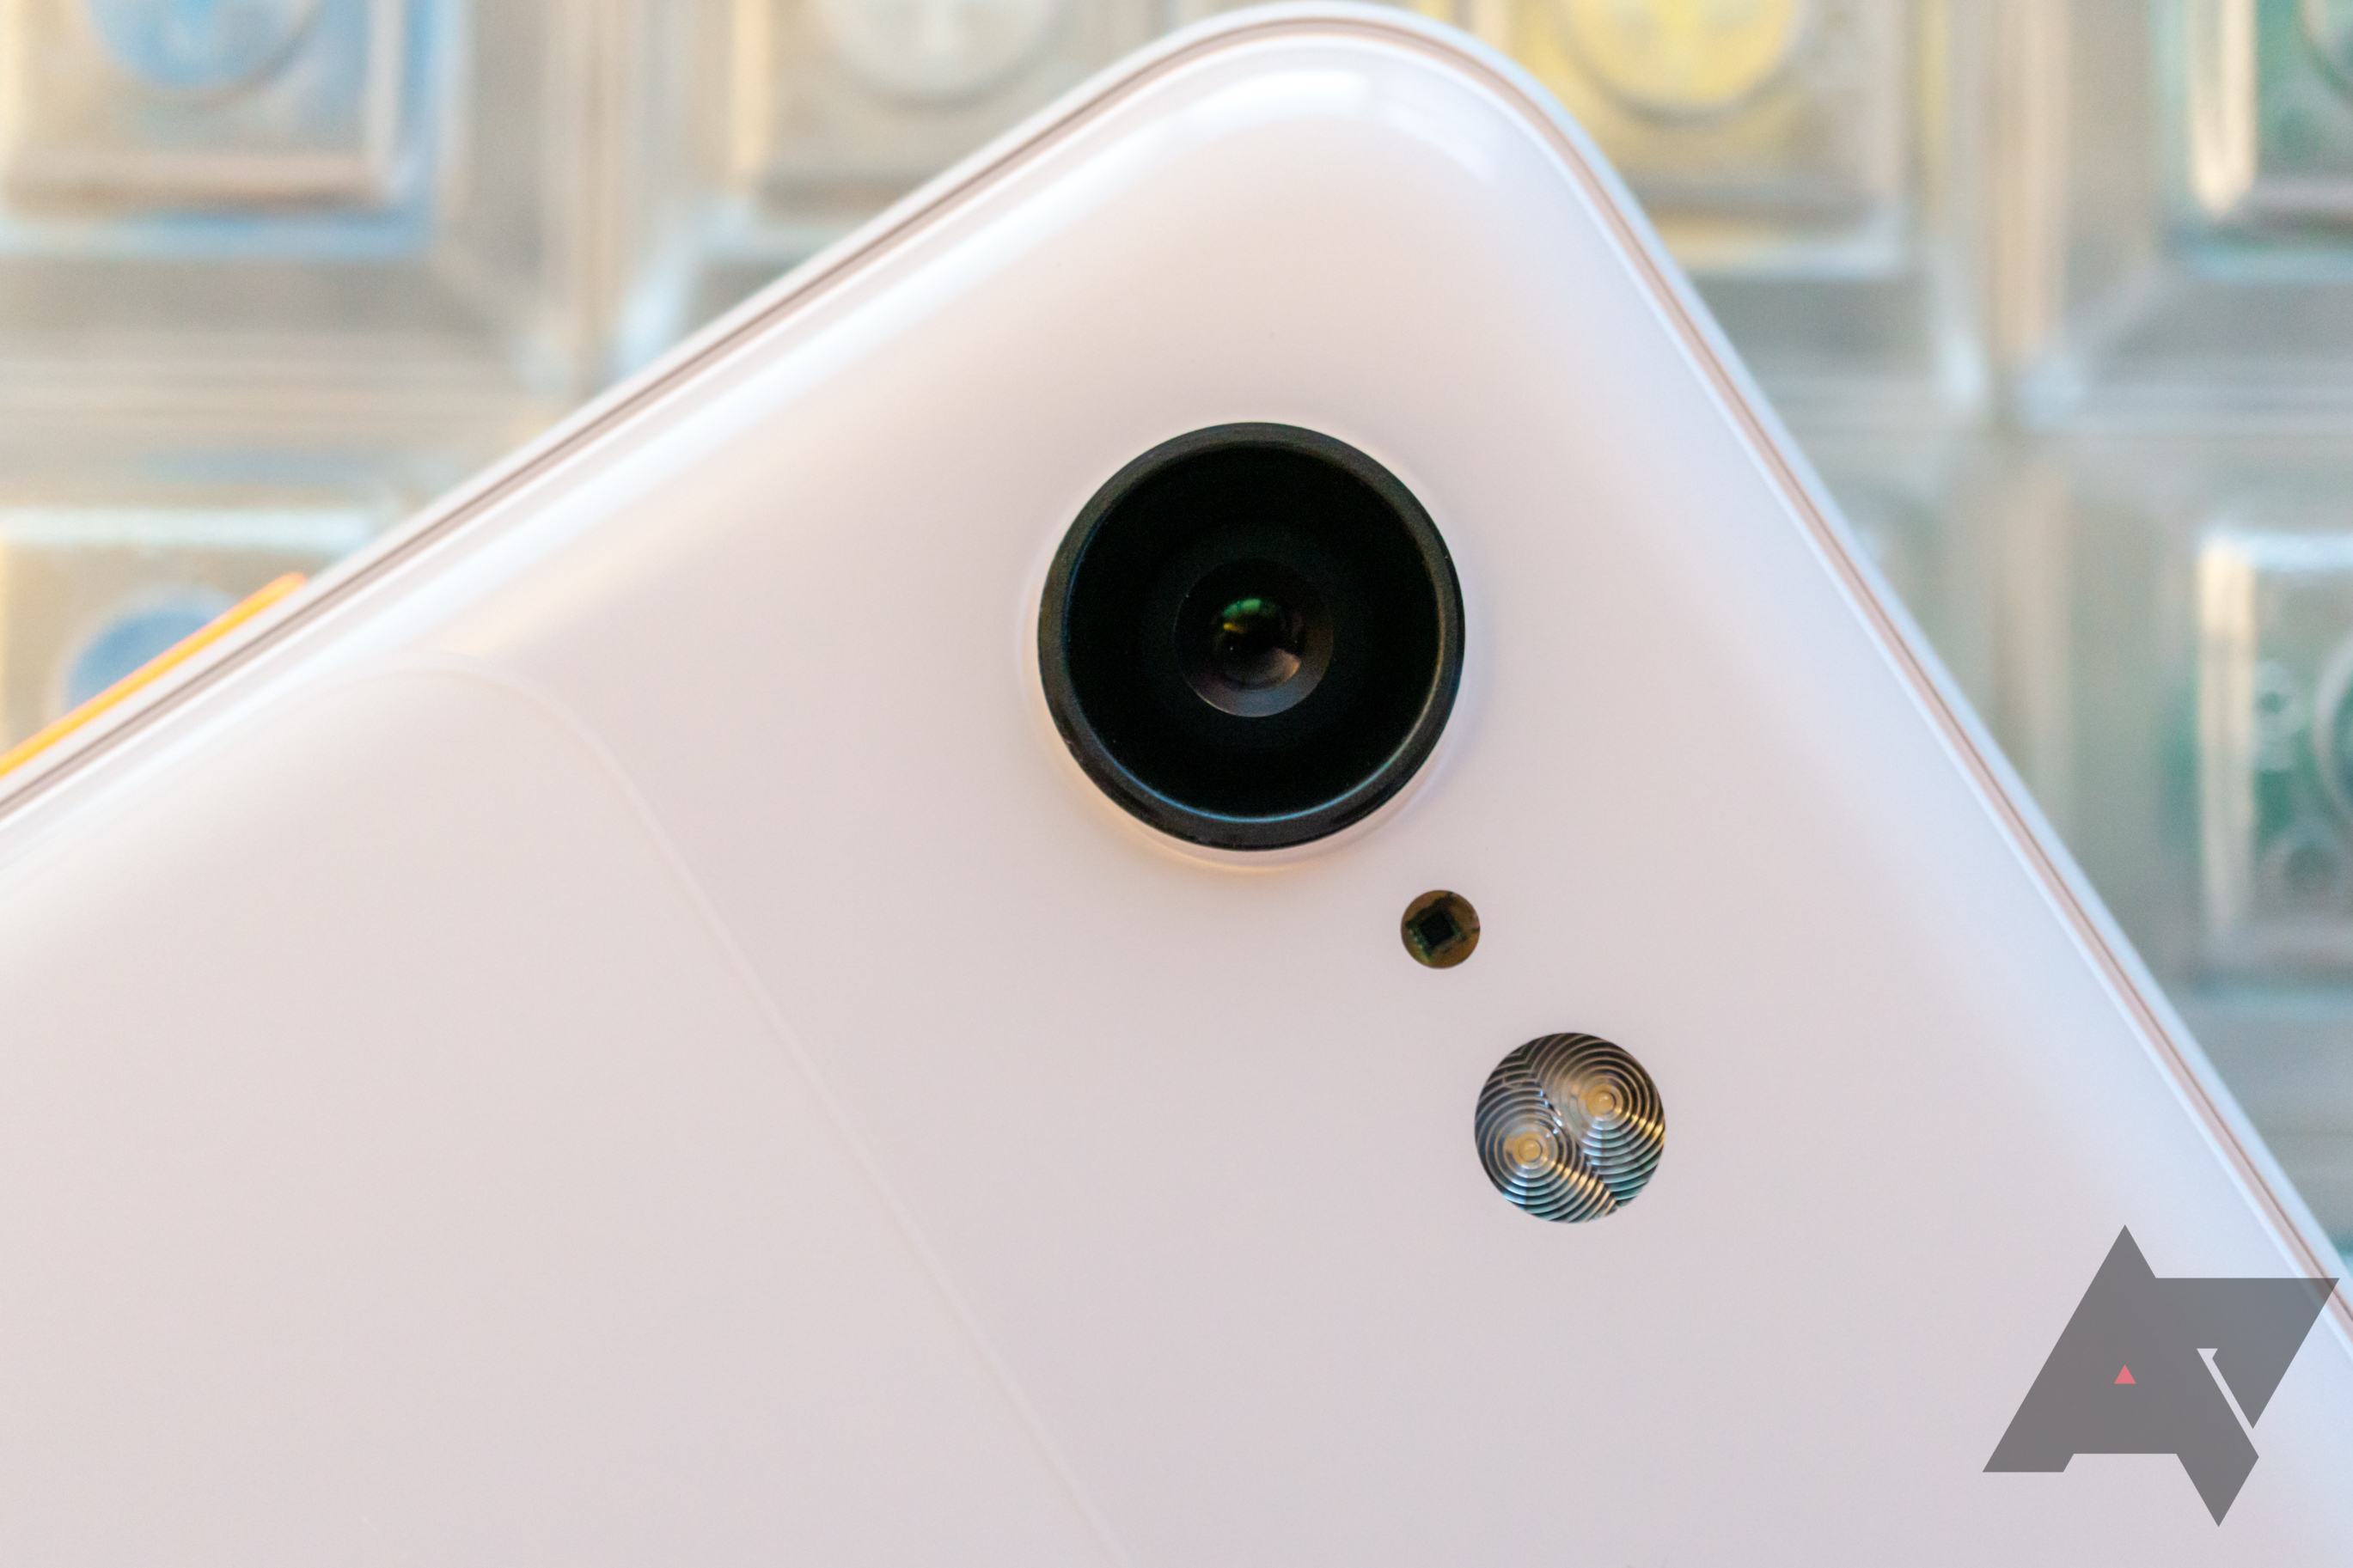 DxOMark follow up with their Pixel 3 camera review